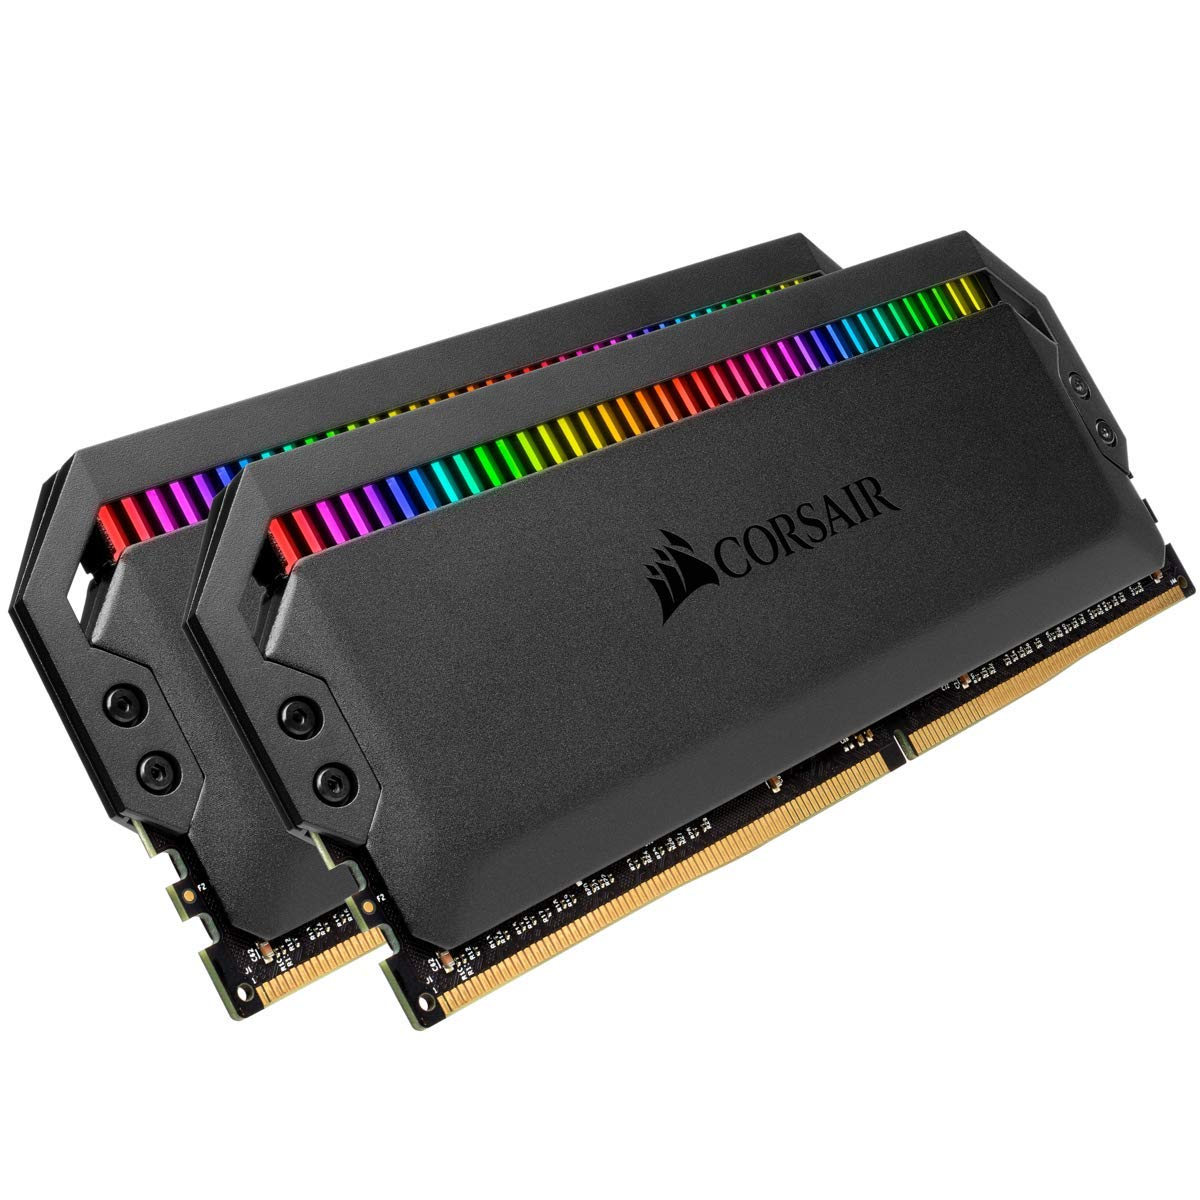 Memoria RAM 32GB Corsair Dominator Platinum RGB (2x16GB) DDR4 3200 (PC4-25600) C16 1.35V